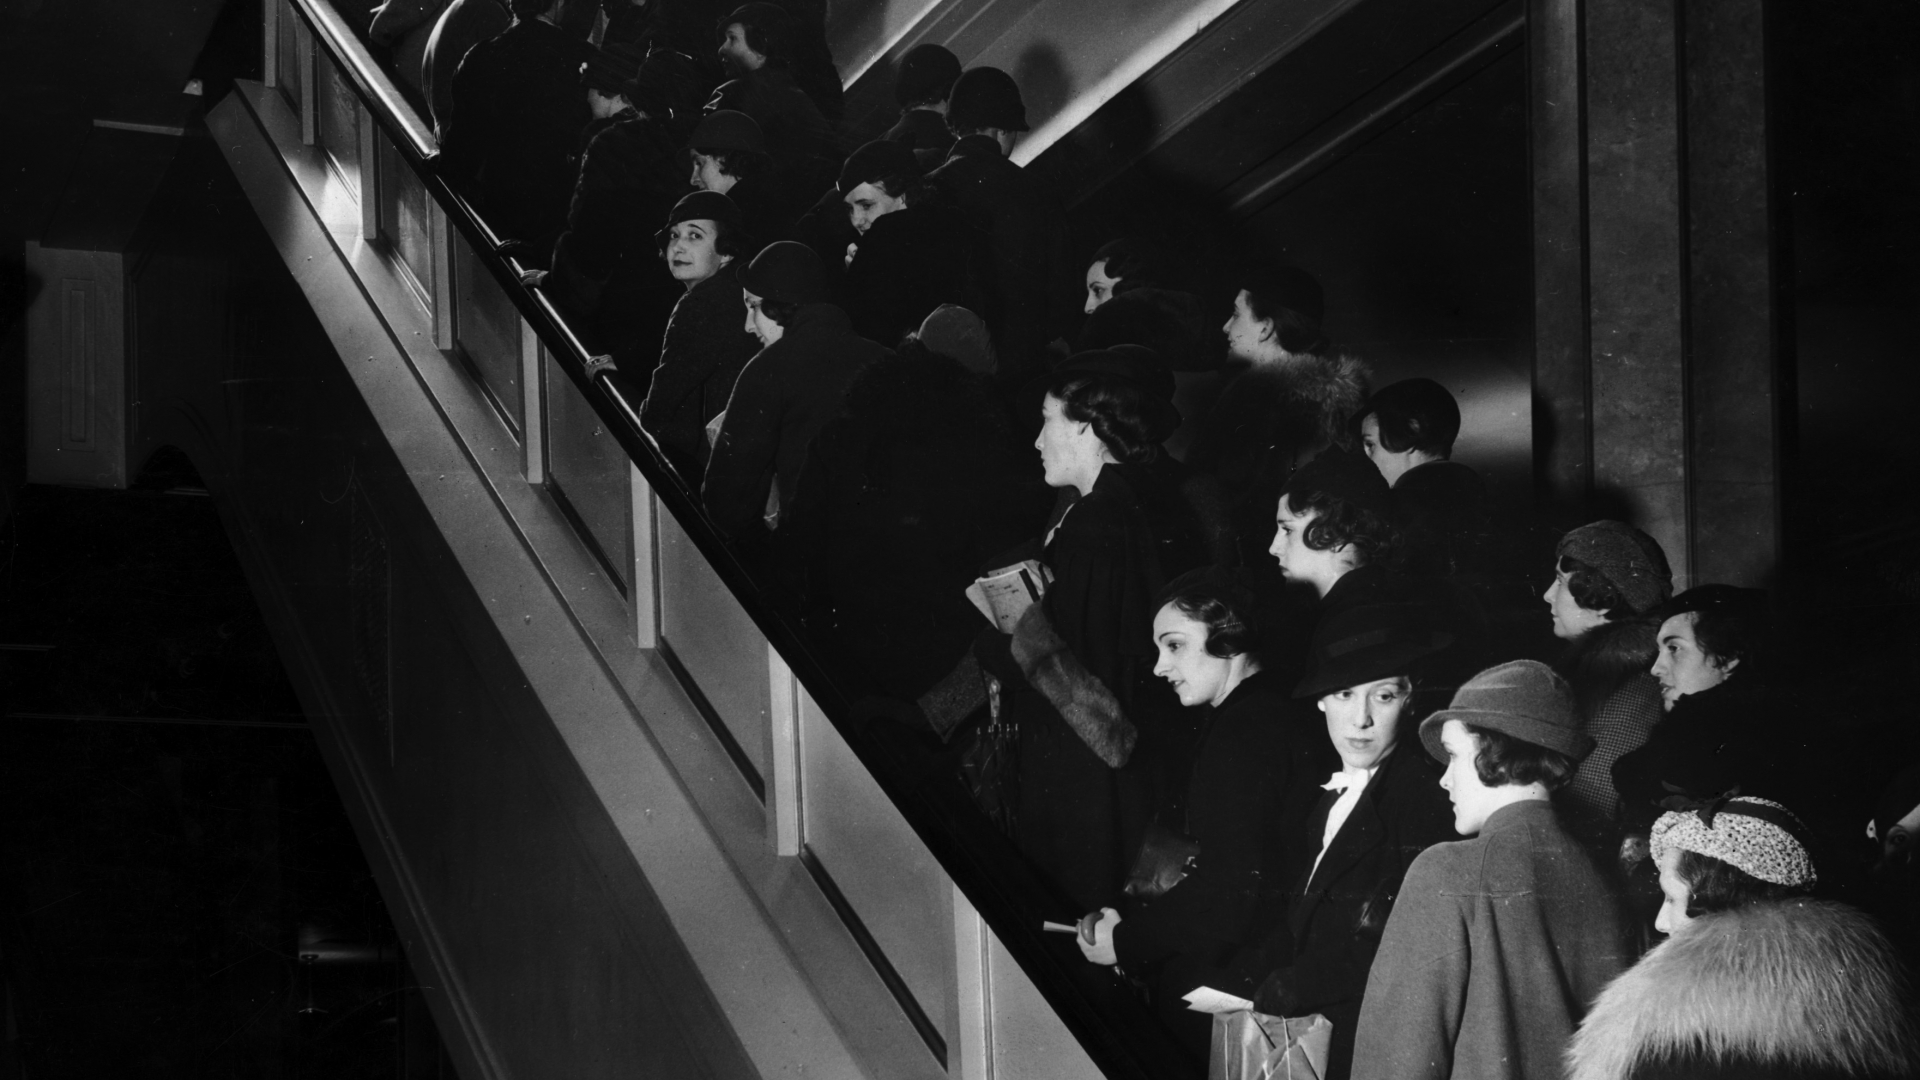 A crowd of shoppers on an escalator inside a department store in New York City, 1935. (Credit: Hulton Archive/Getty Images)